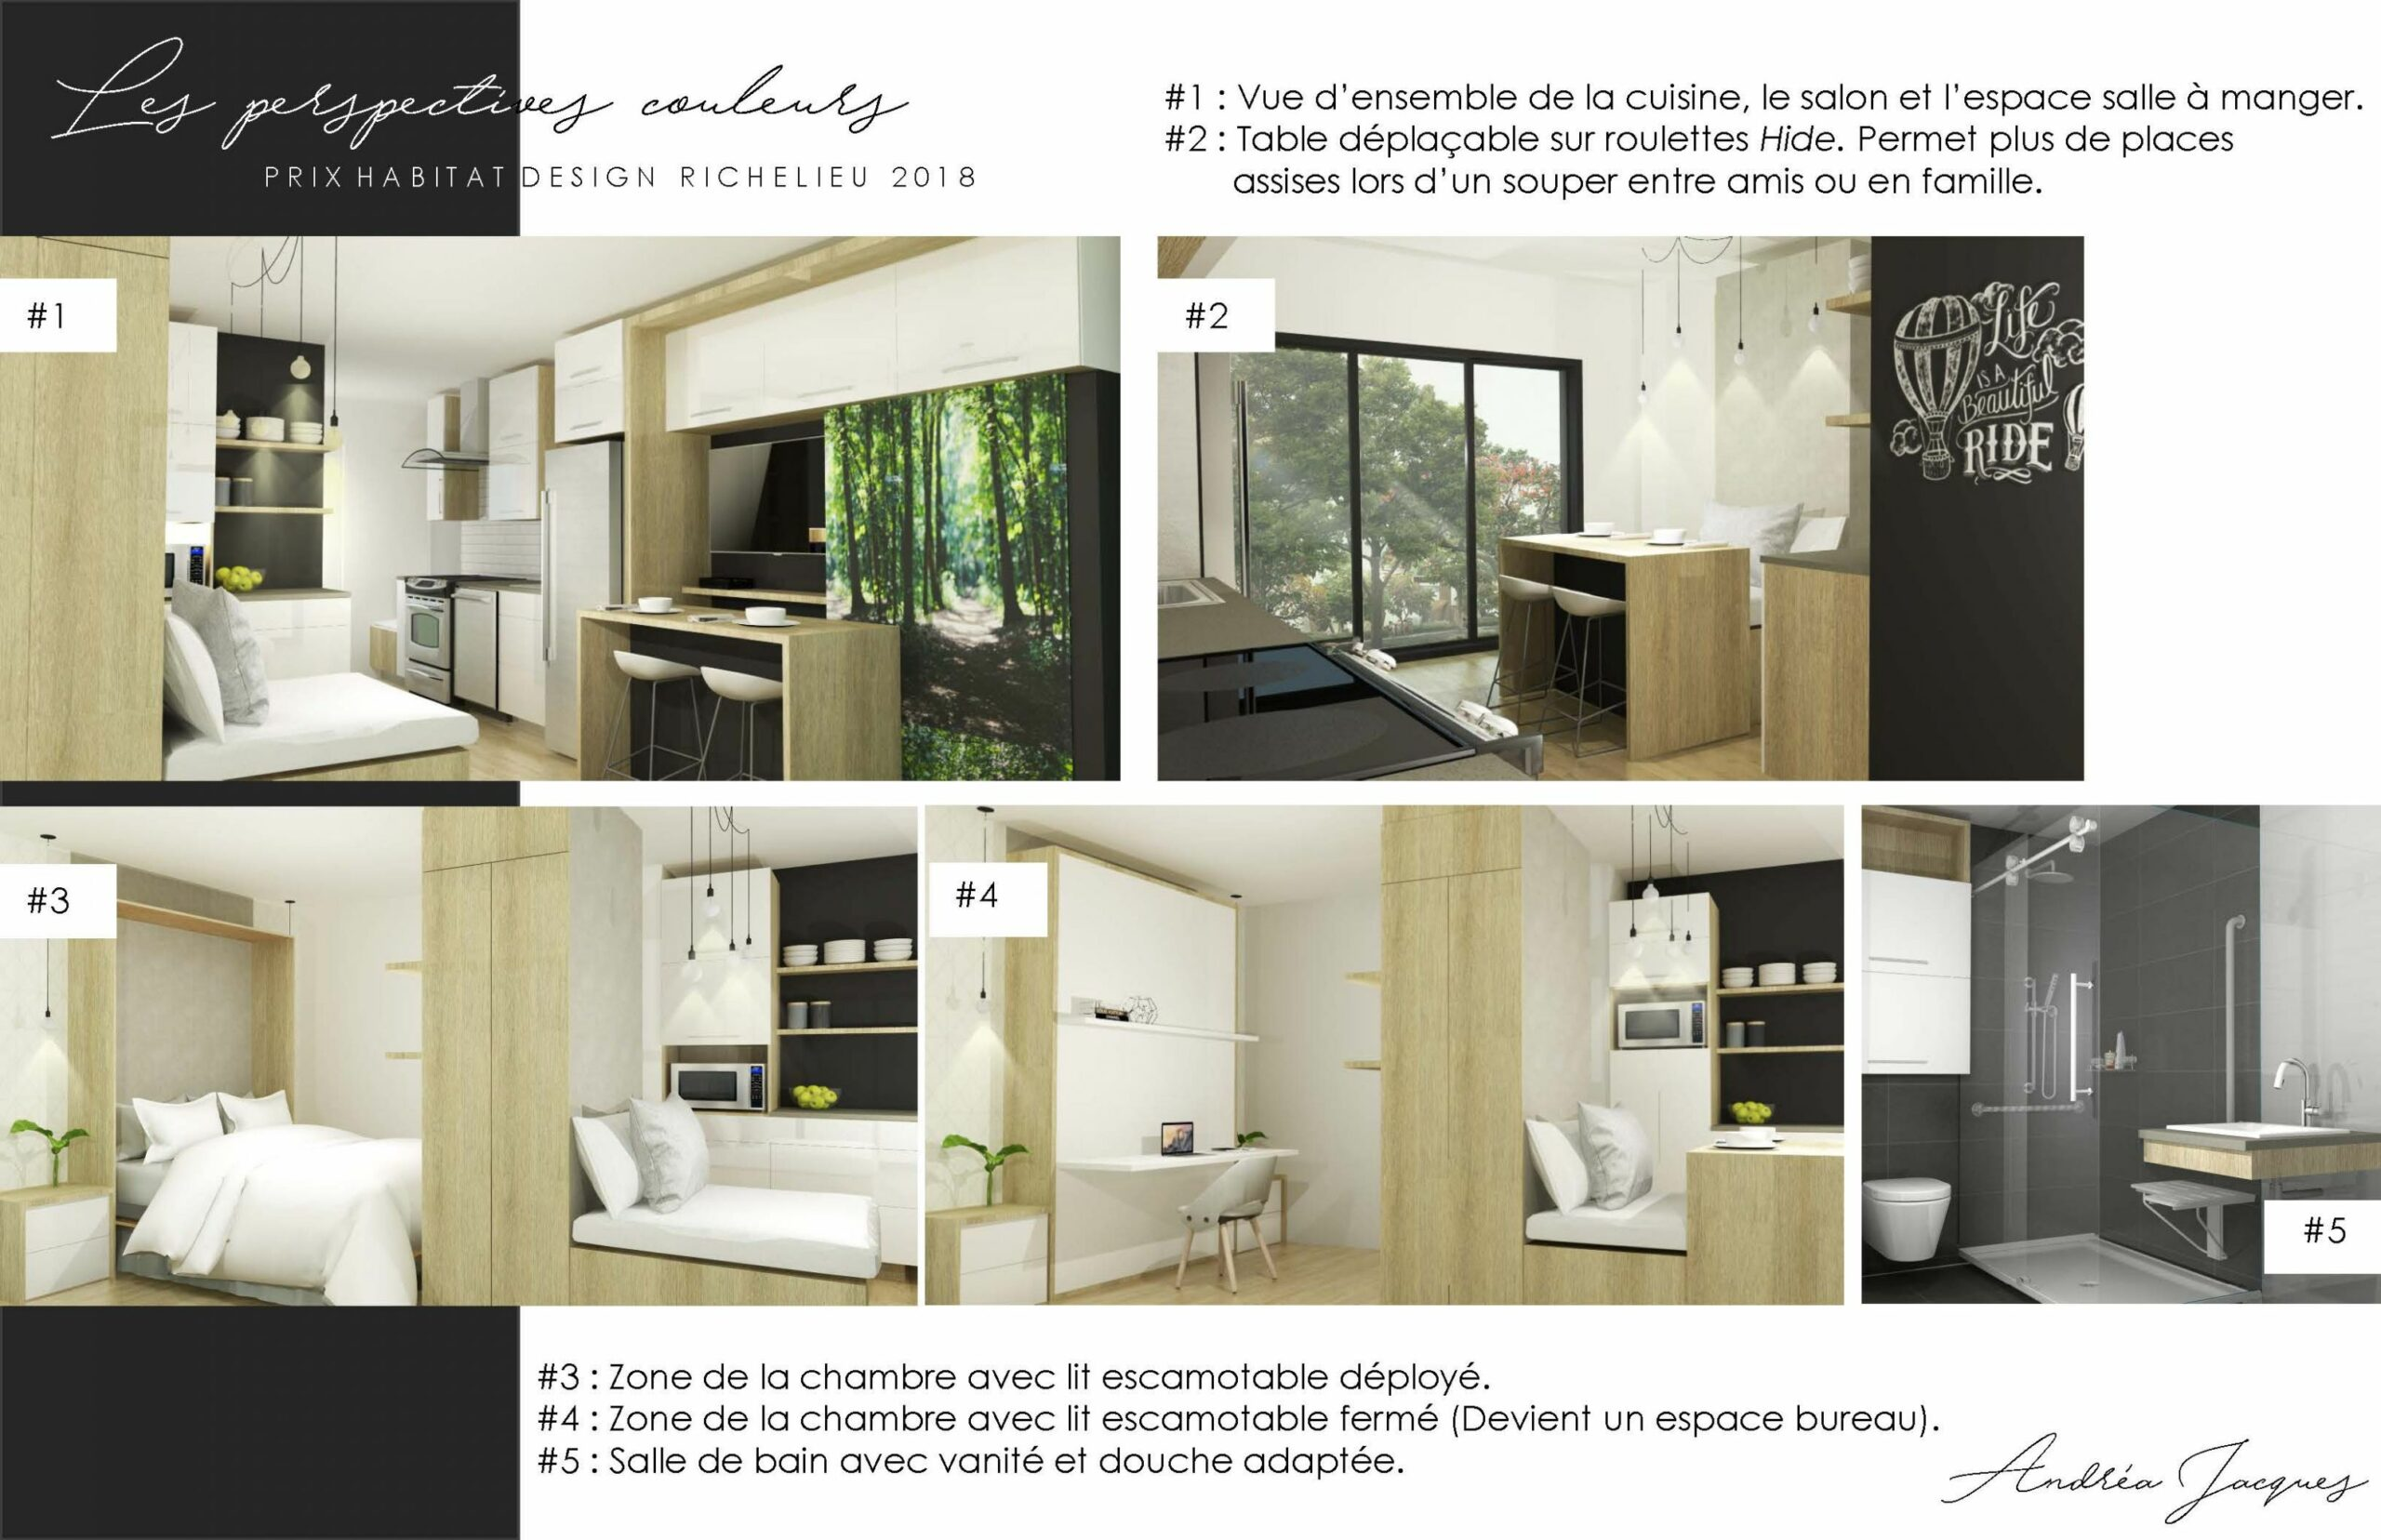 Universal Design Features Give These Micro-Apartments Extra ..